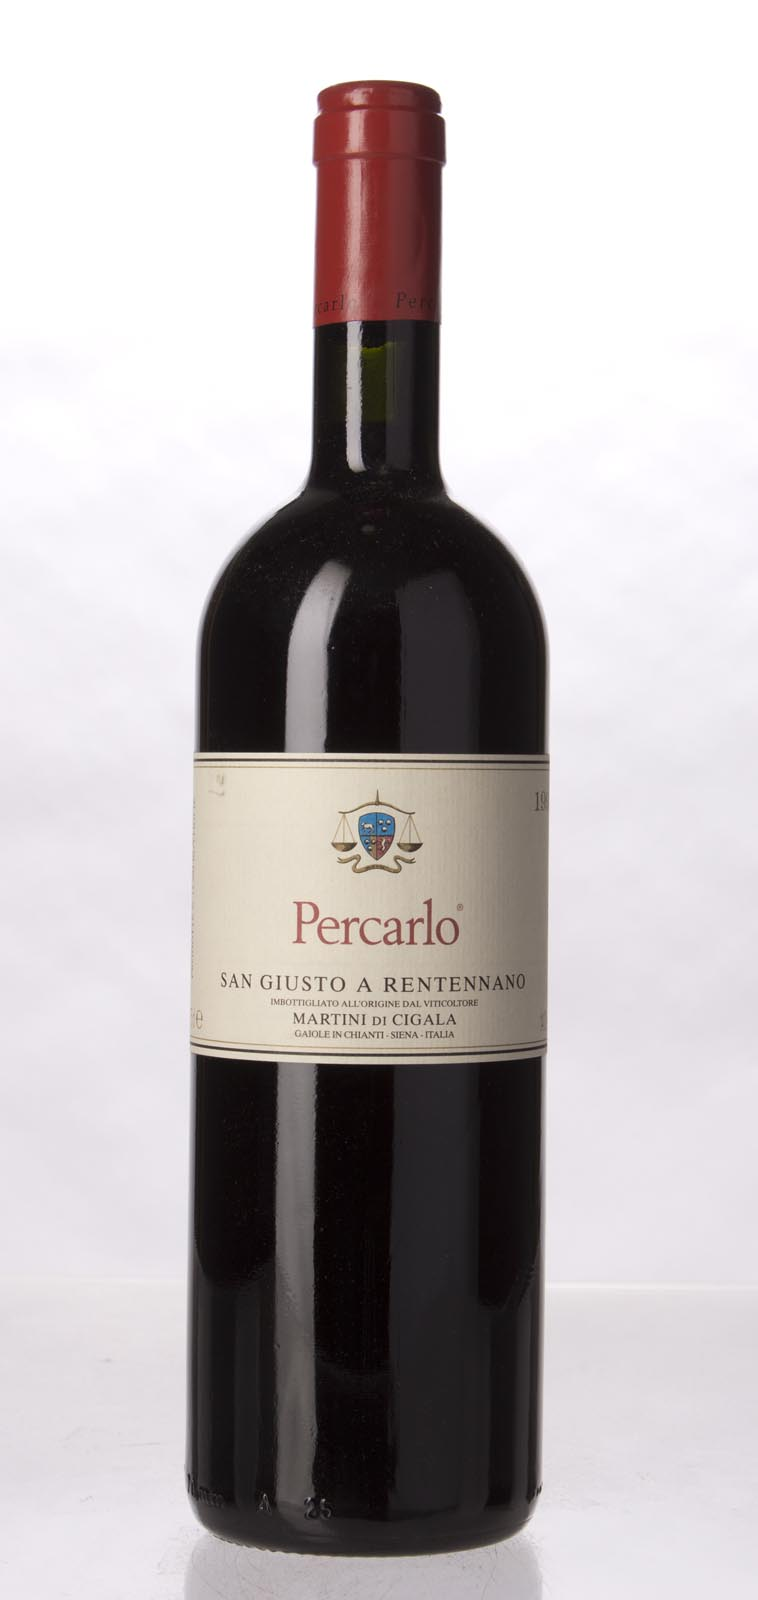 San Giusto a Rentennano Percarlo IGT 1995, 750mL (WA92) from The BPW - Merchants of rare and fine wines.